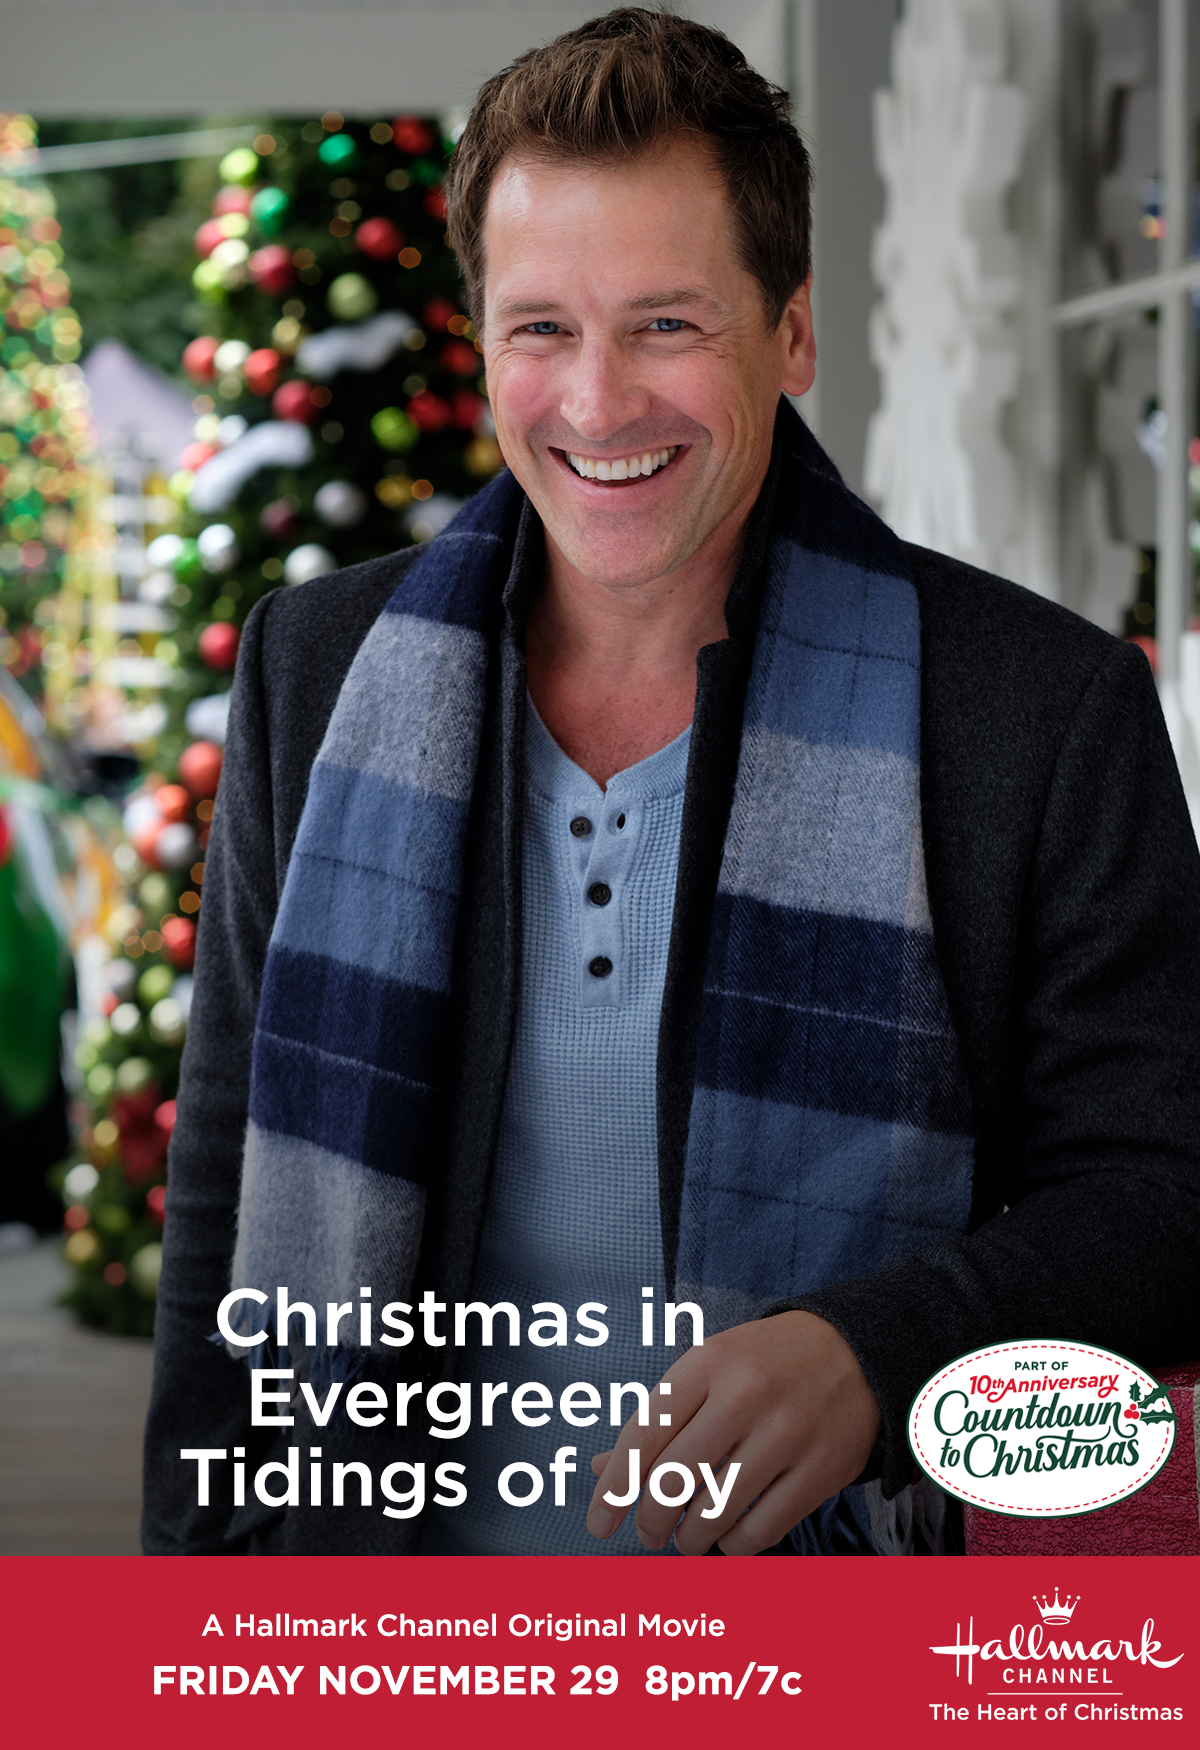 Paul Greene And Maggie Lawson Reunite When Calls The Heart For A Second Time To Join T Hallmark Channel Hallmark Channel Christmas Movies Christmas Countdown